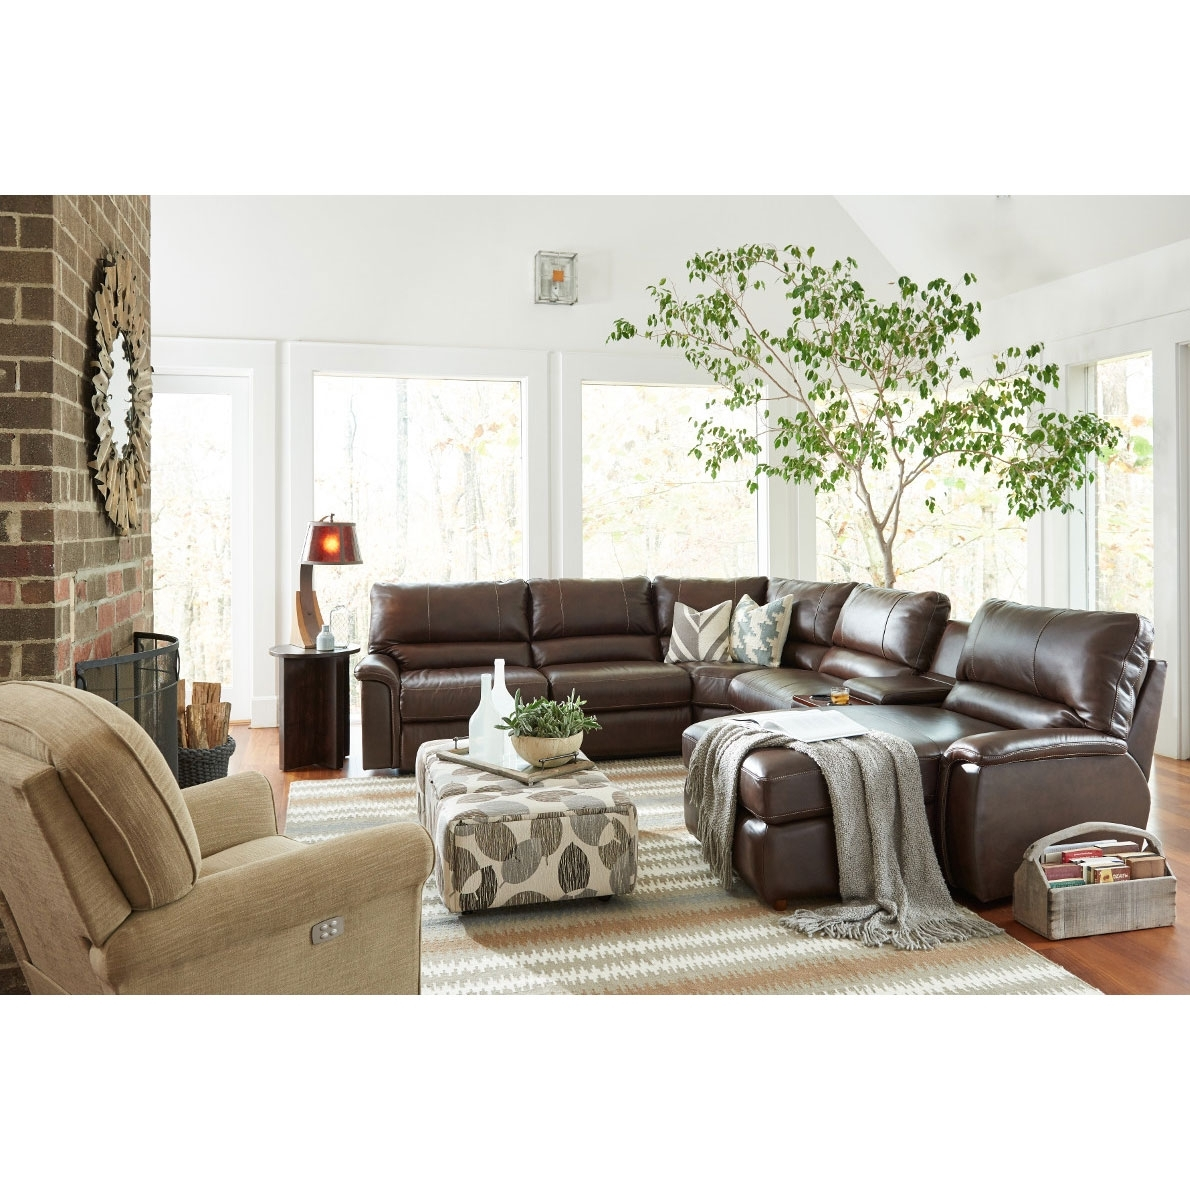 Aspen Sectional Within Aspen 2 Piece Sleeper Sectionals With Laf Chaise (Image 10 of 25)